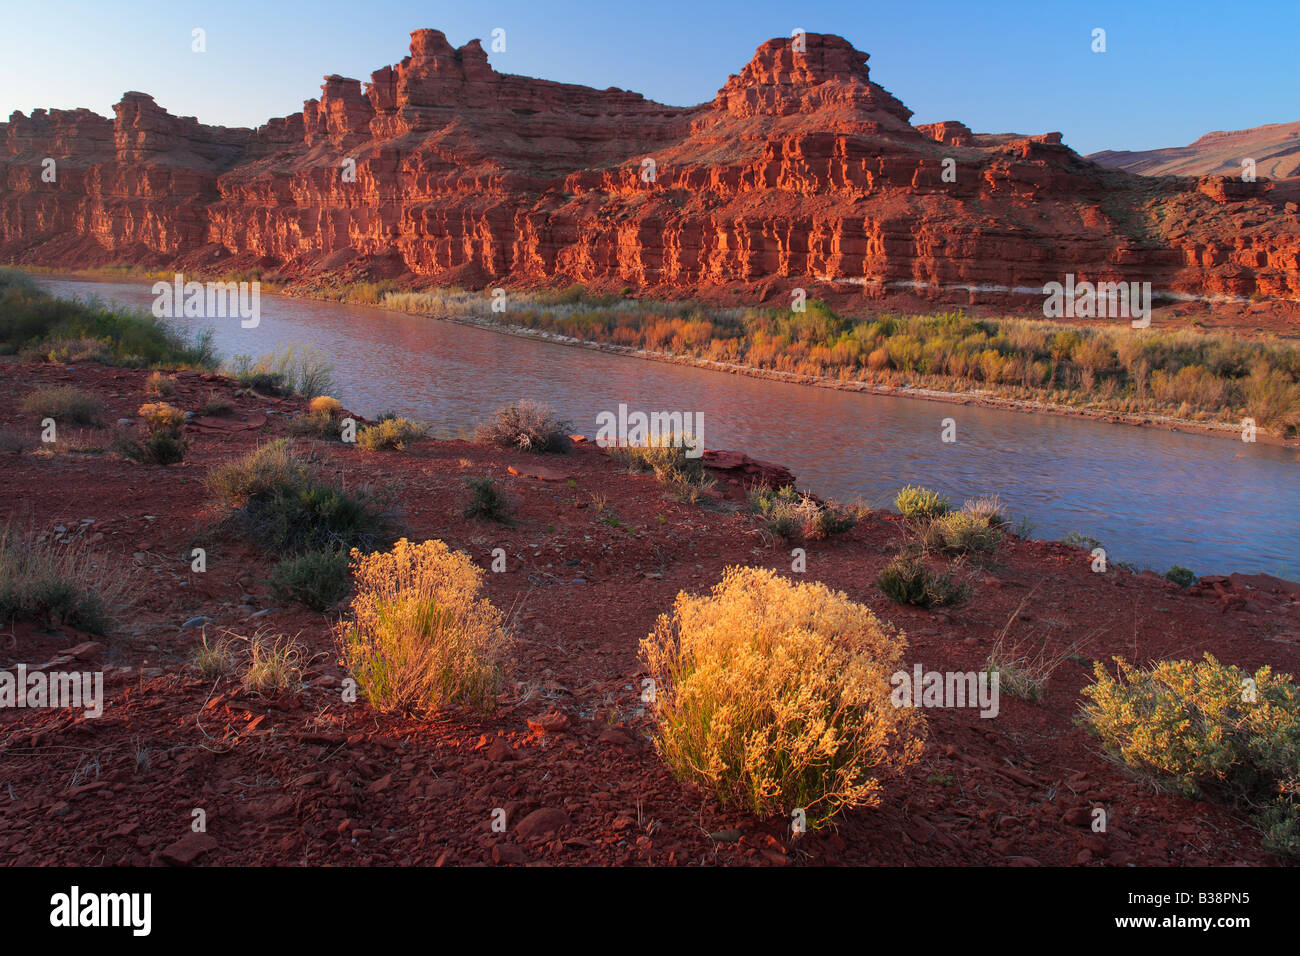 San Juan River at Mexican Hat, Utah - Stock Image